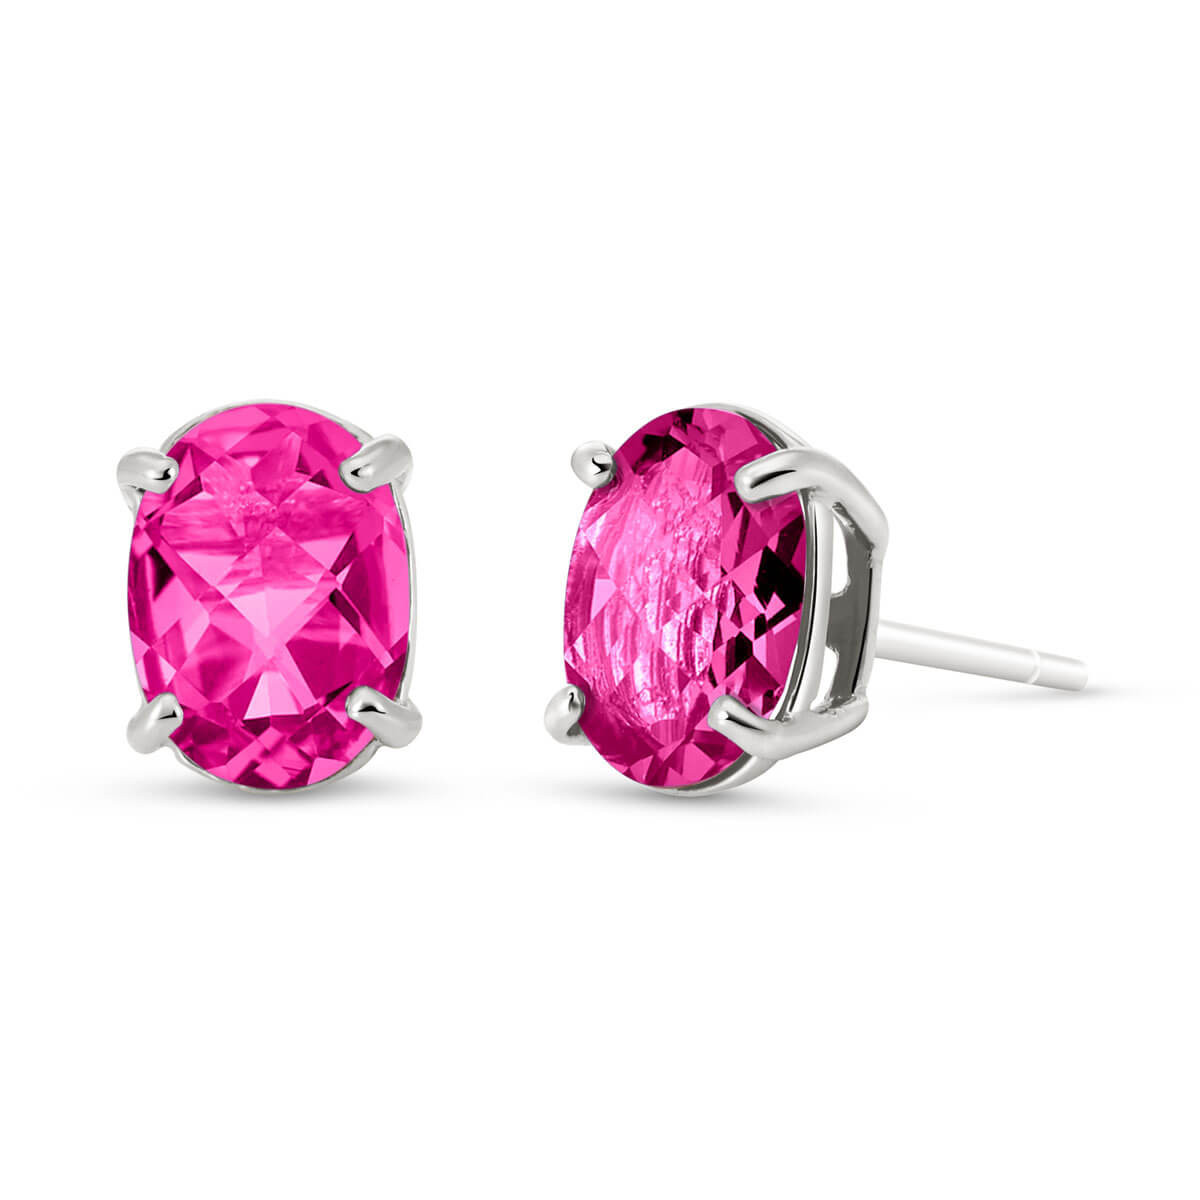 Pink Topaz Stud Earrings 1.8 ctw in 9ct White Gold